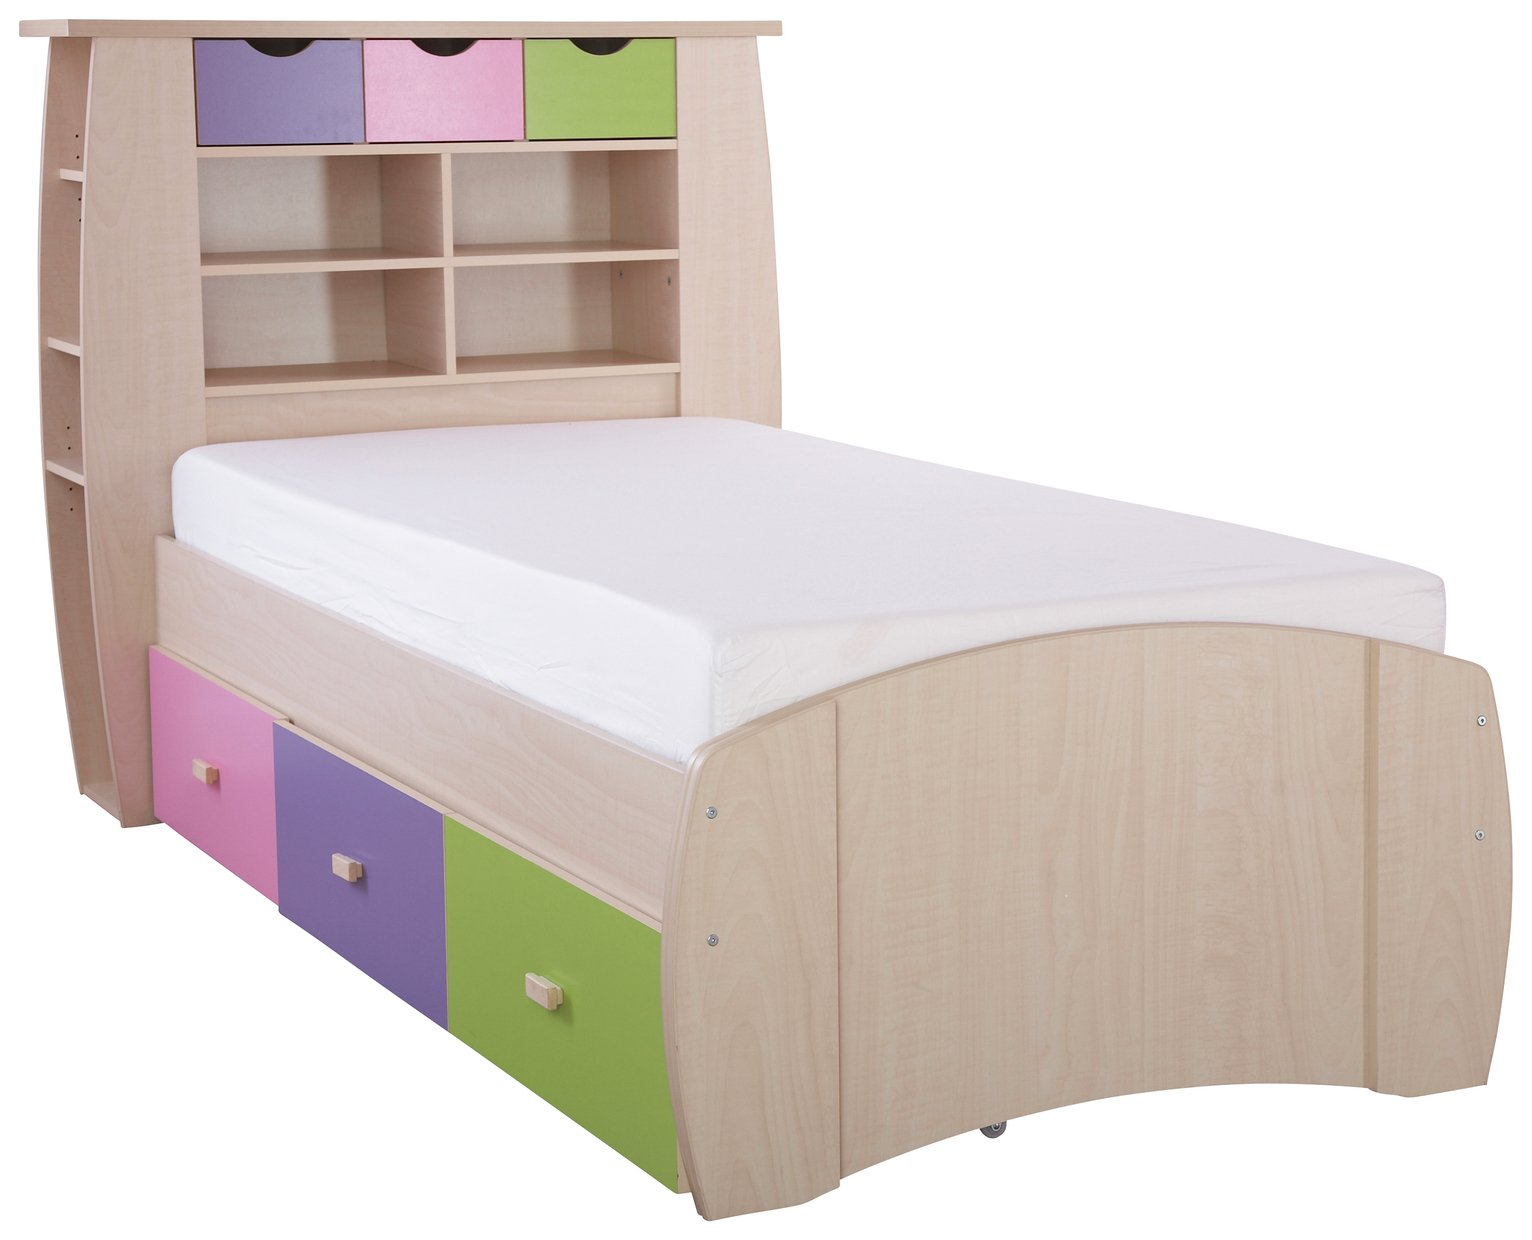 Image of GFW Sydney Cabin Bed - Pink